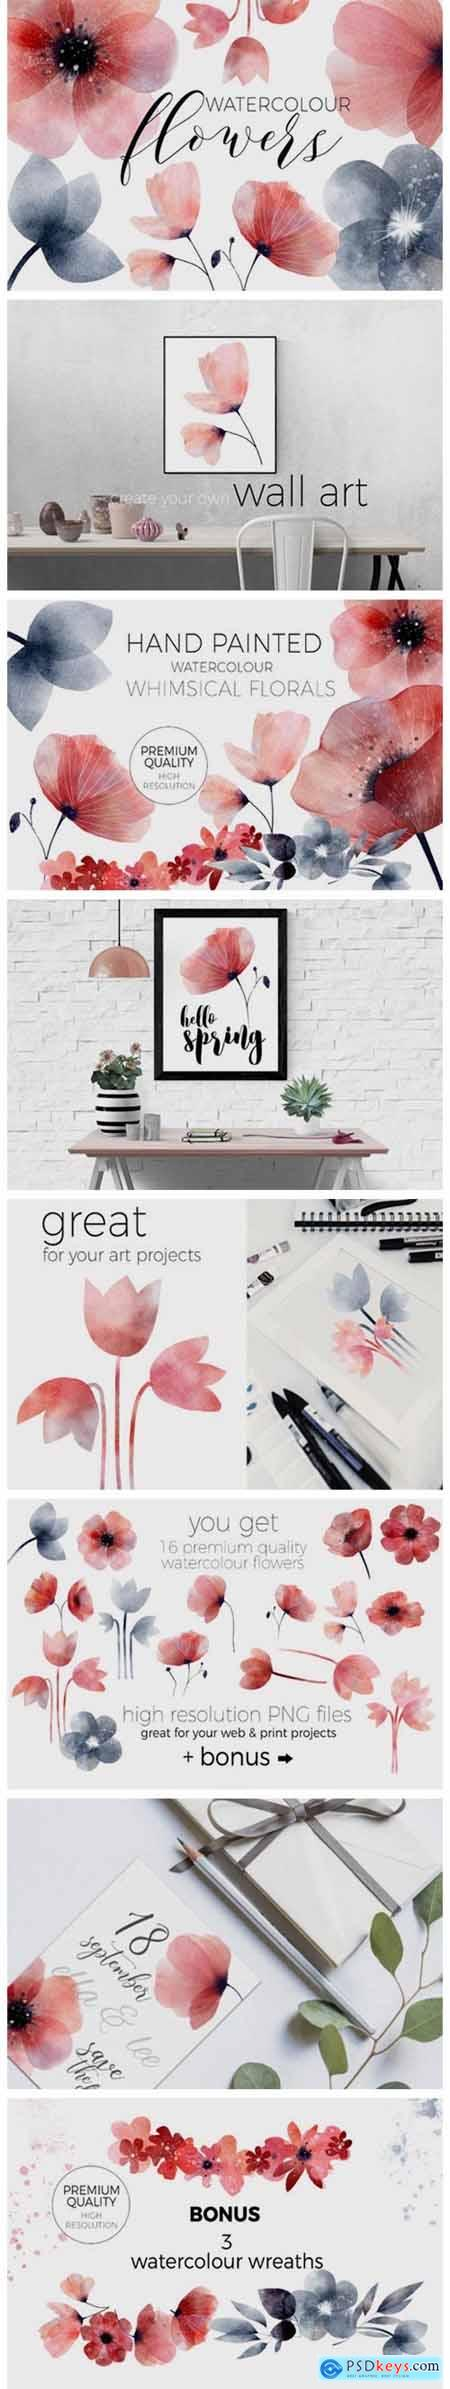 Whimsical Spring Florals Watercolor 6995920